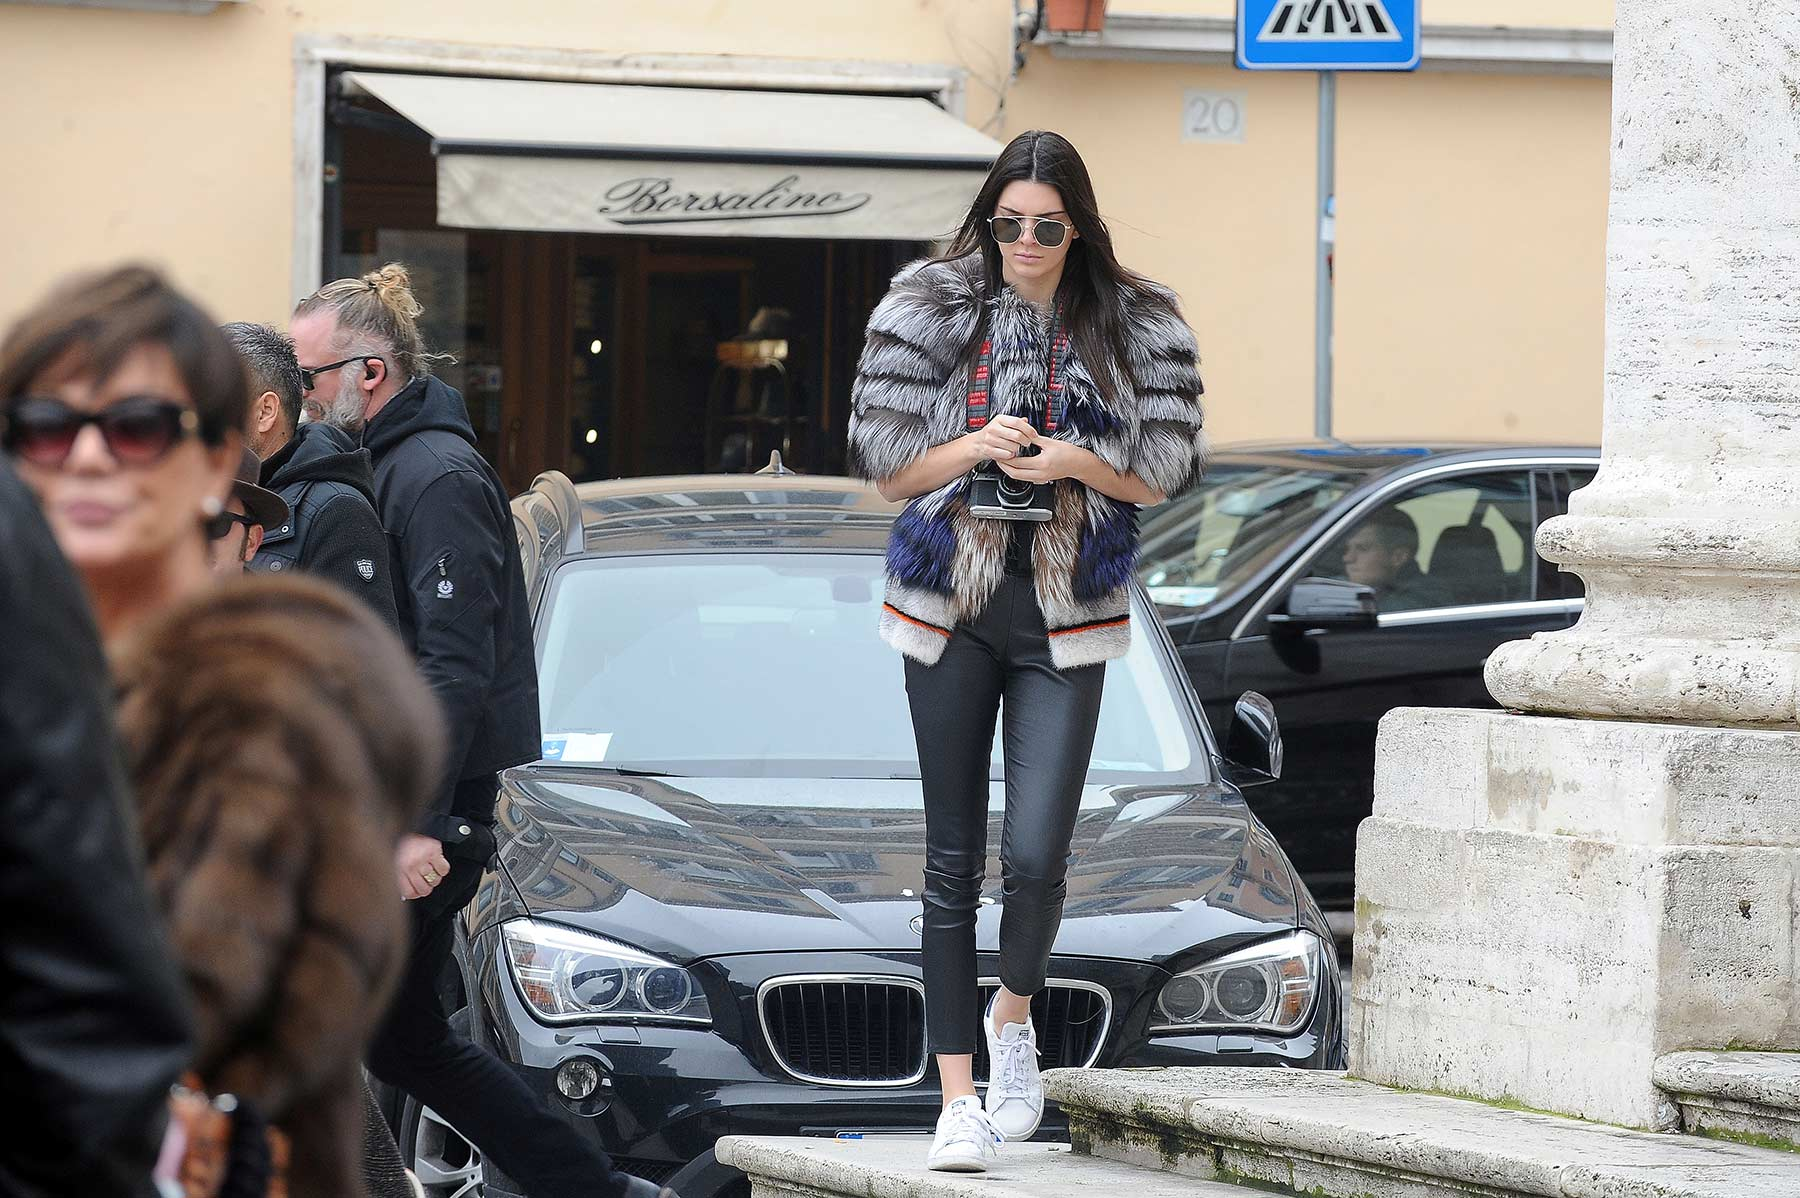 Kendall Jenner out in Rome